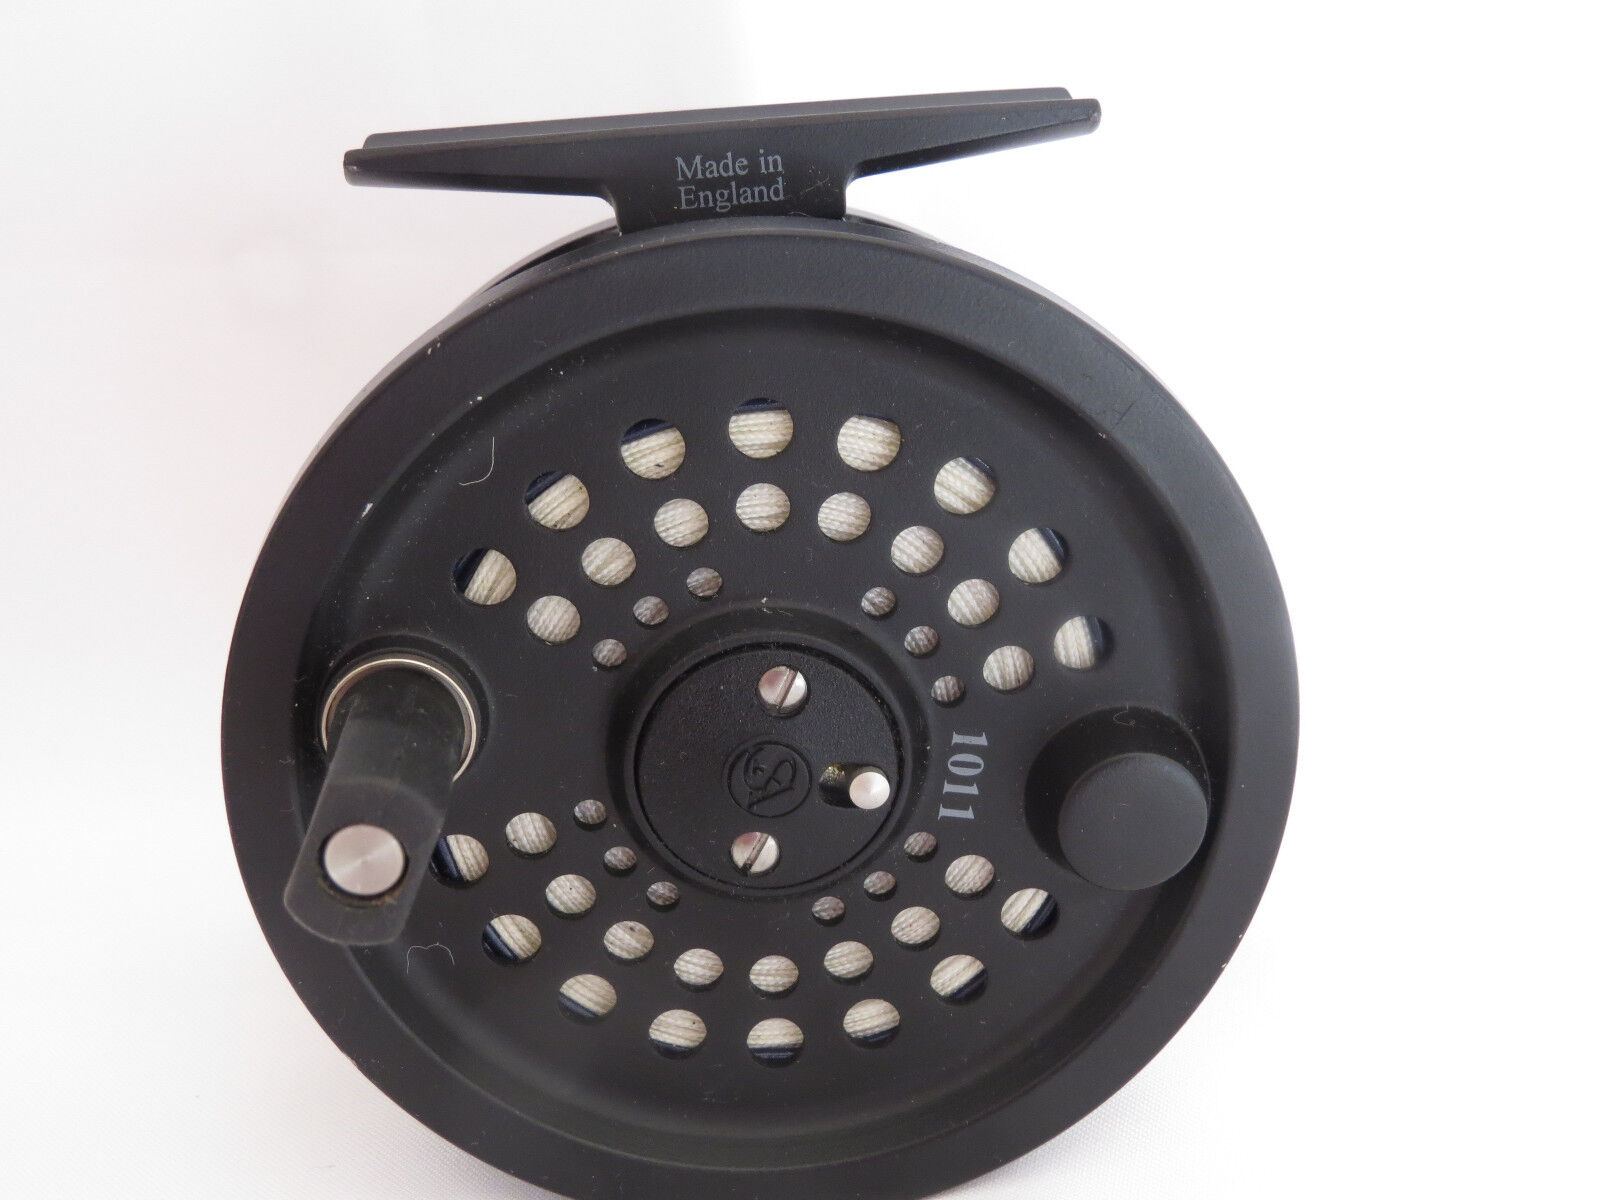 SCIENTIFIC Anglers 1011 System 2 Salmone REEL MADE IN ENGLAND  1011